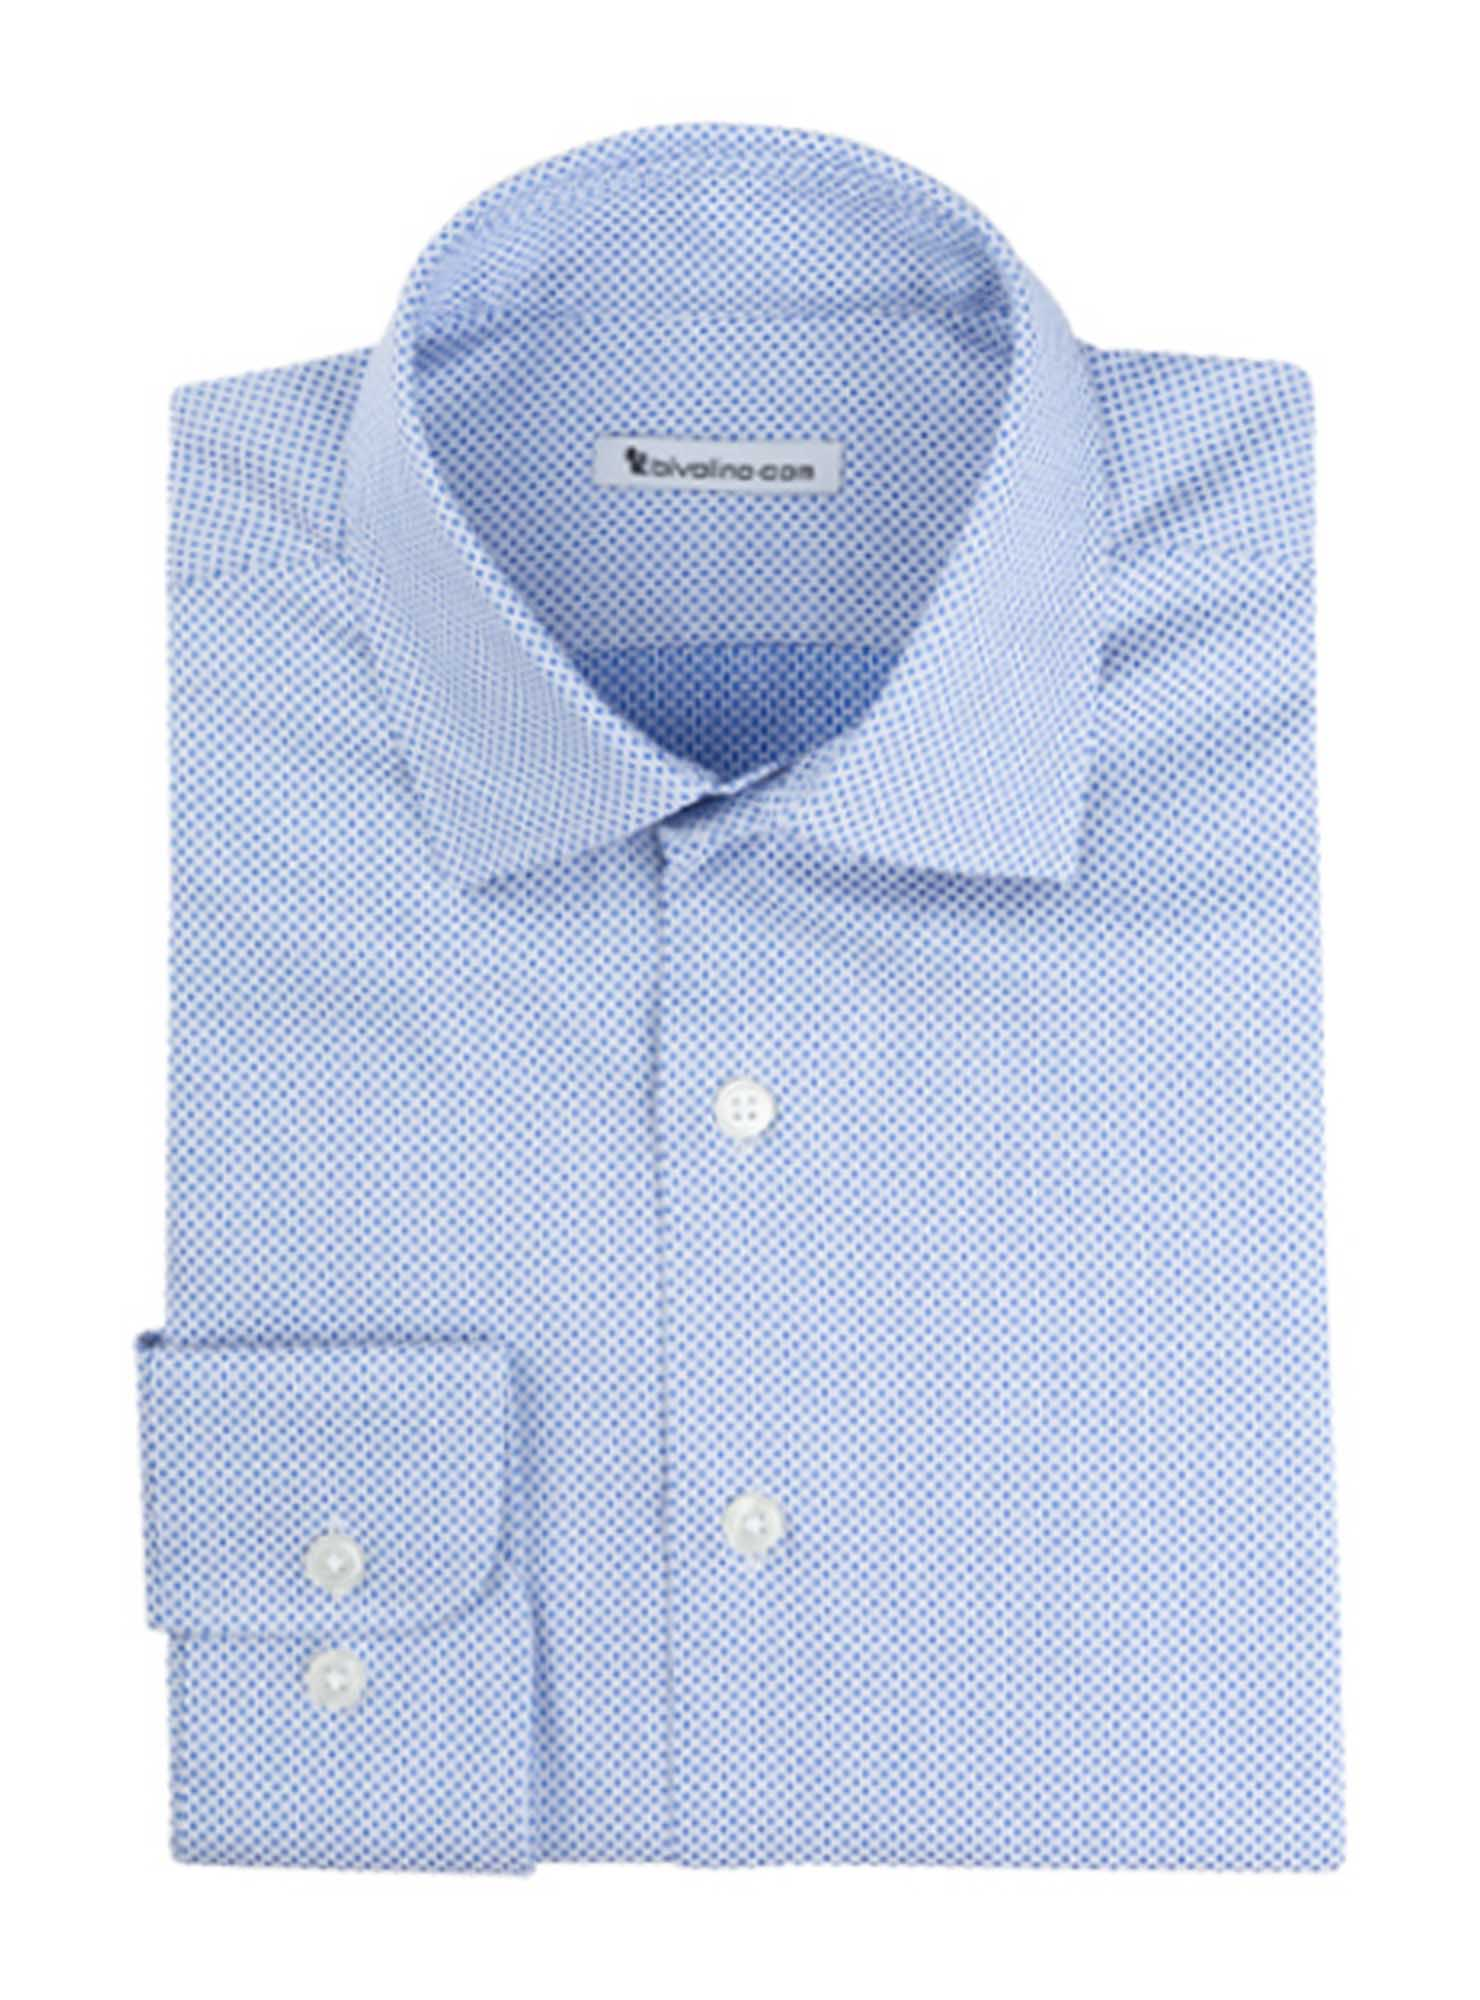 SONNINO  - men's shirt cotton two-fold 2ply Egyptian - Dobby houndstooth - RIGOR 3